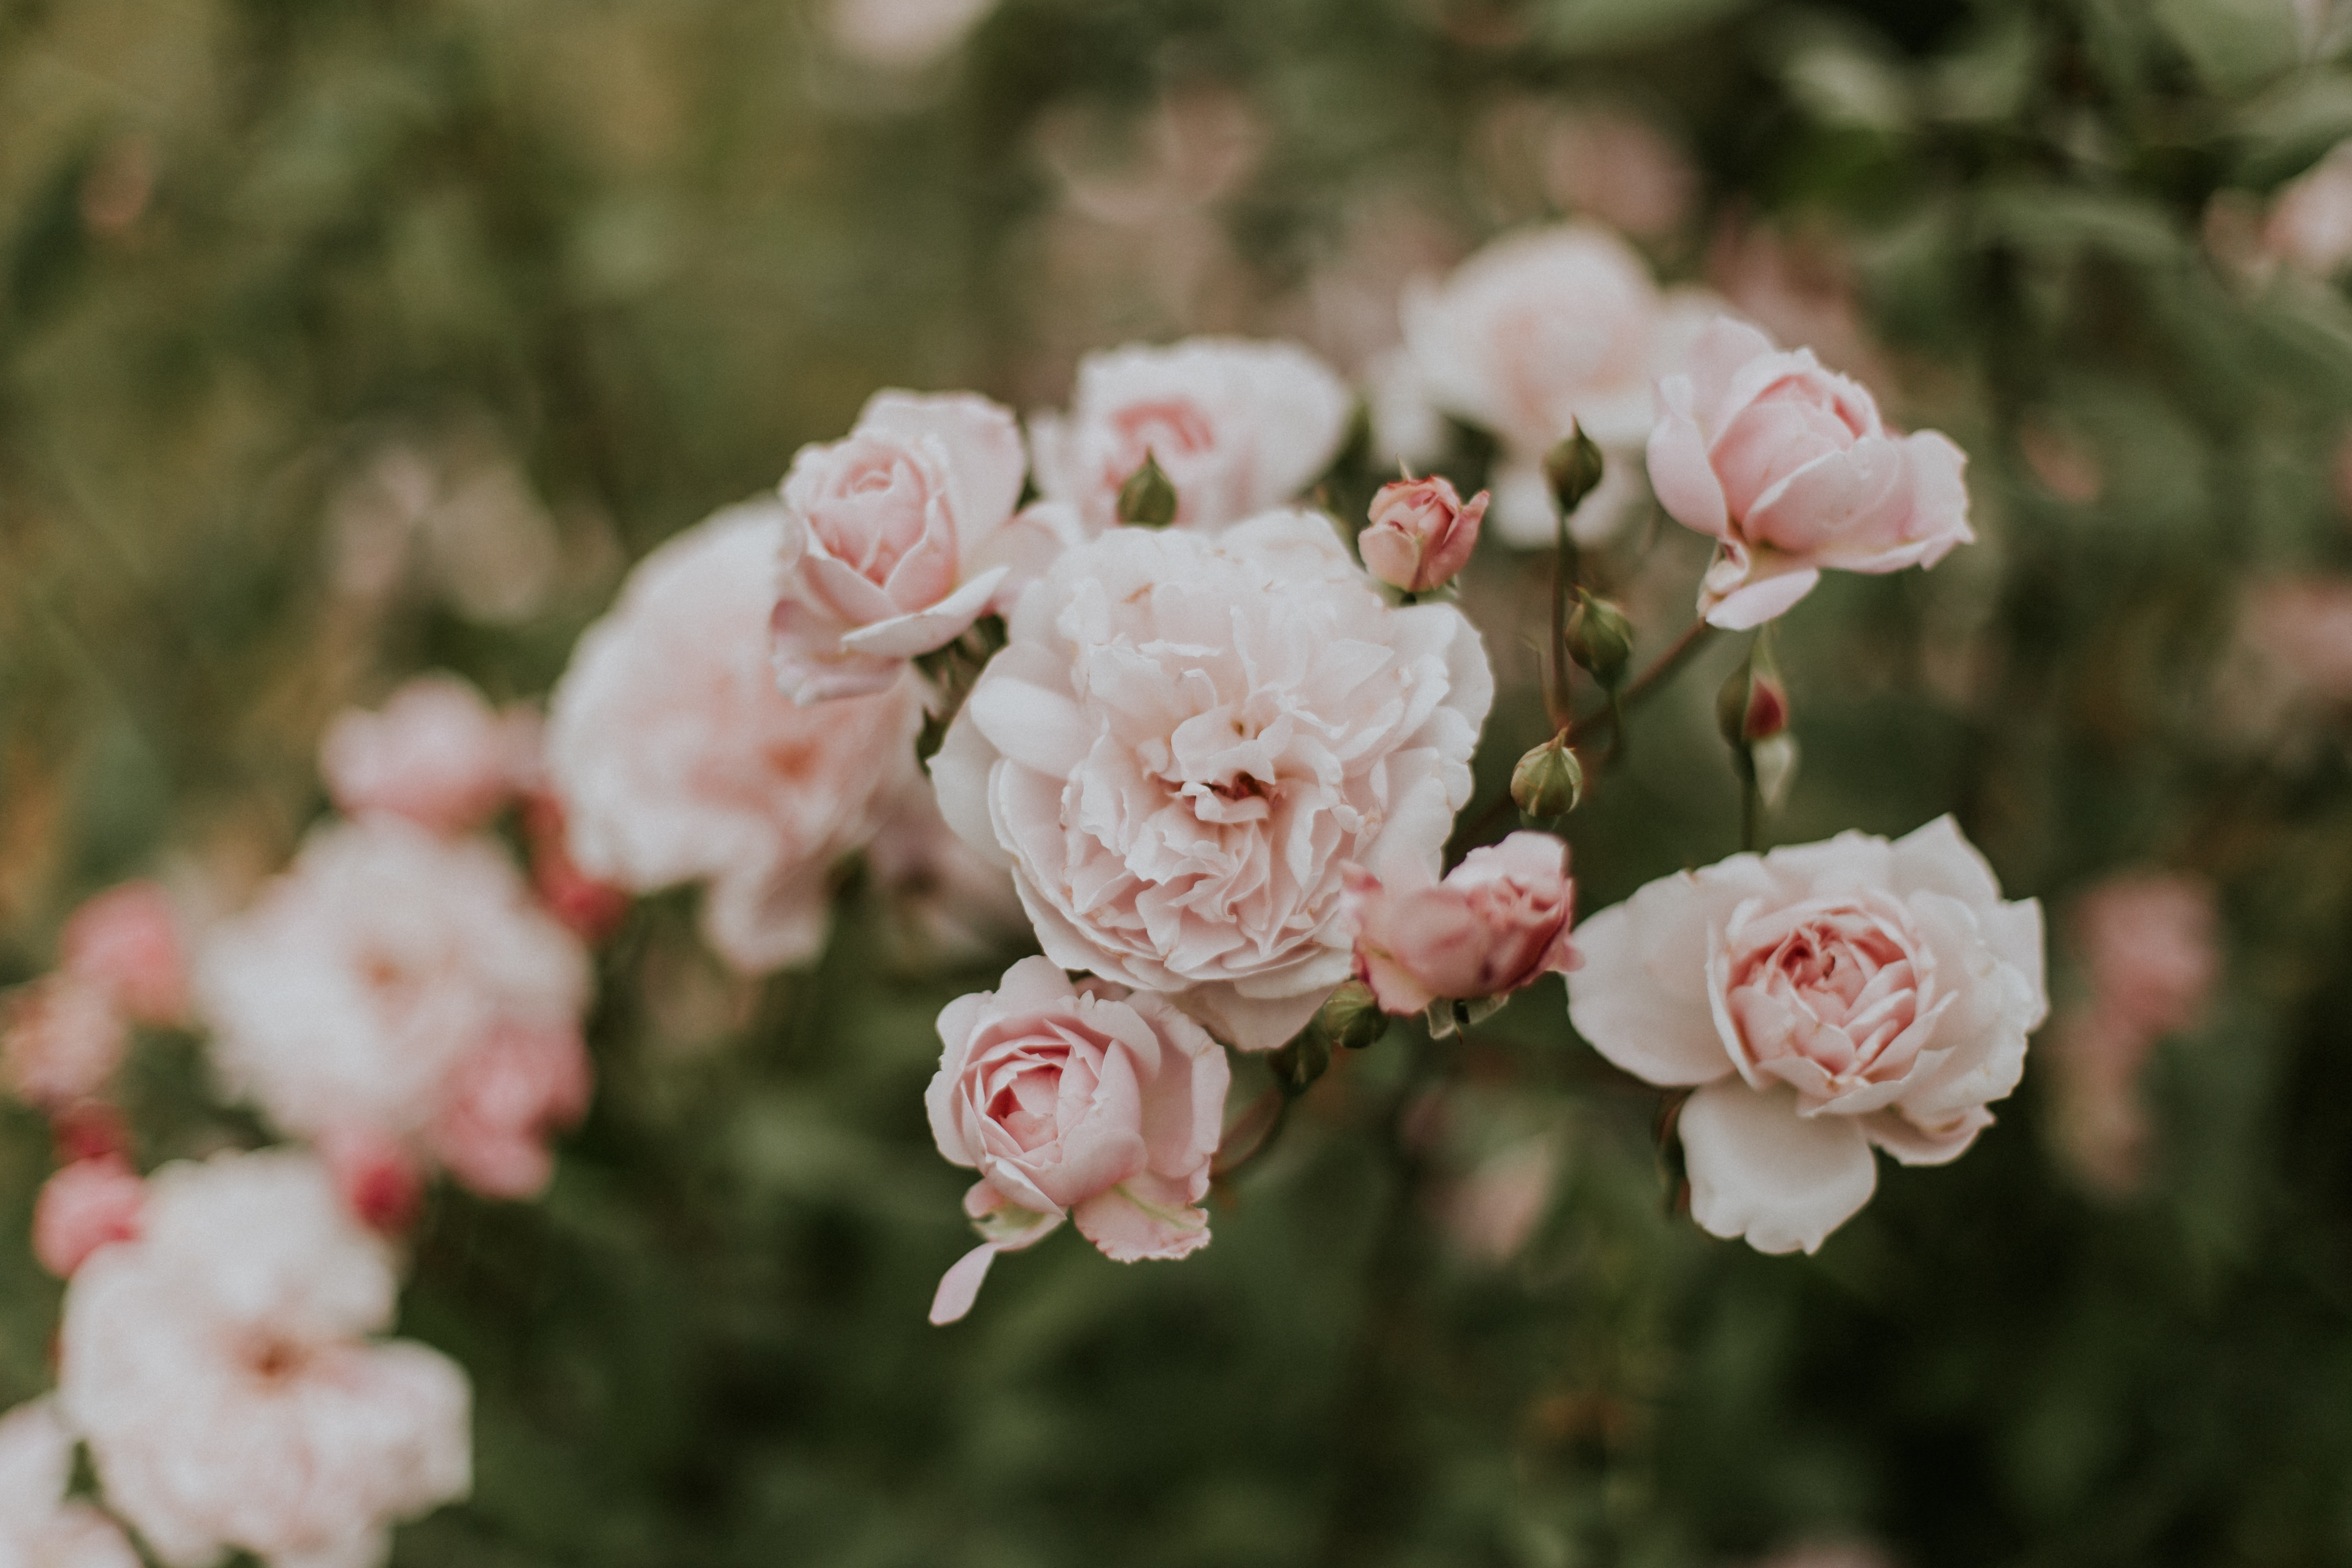 white-and-pink petaled flowers at daytime